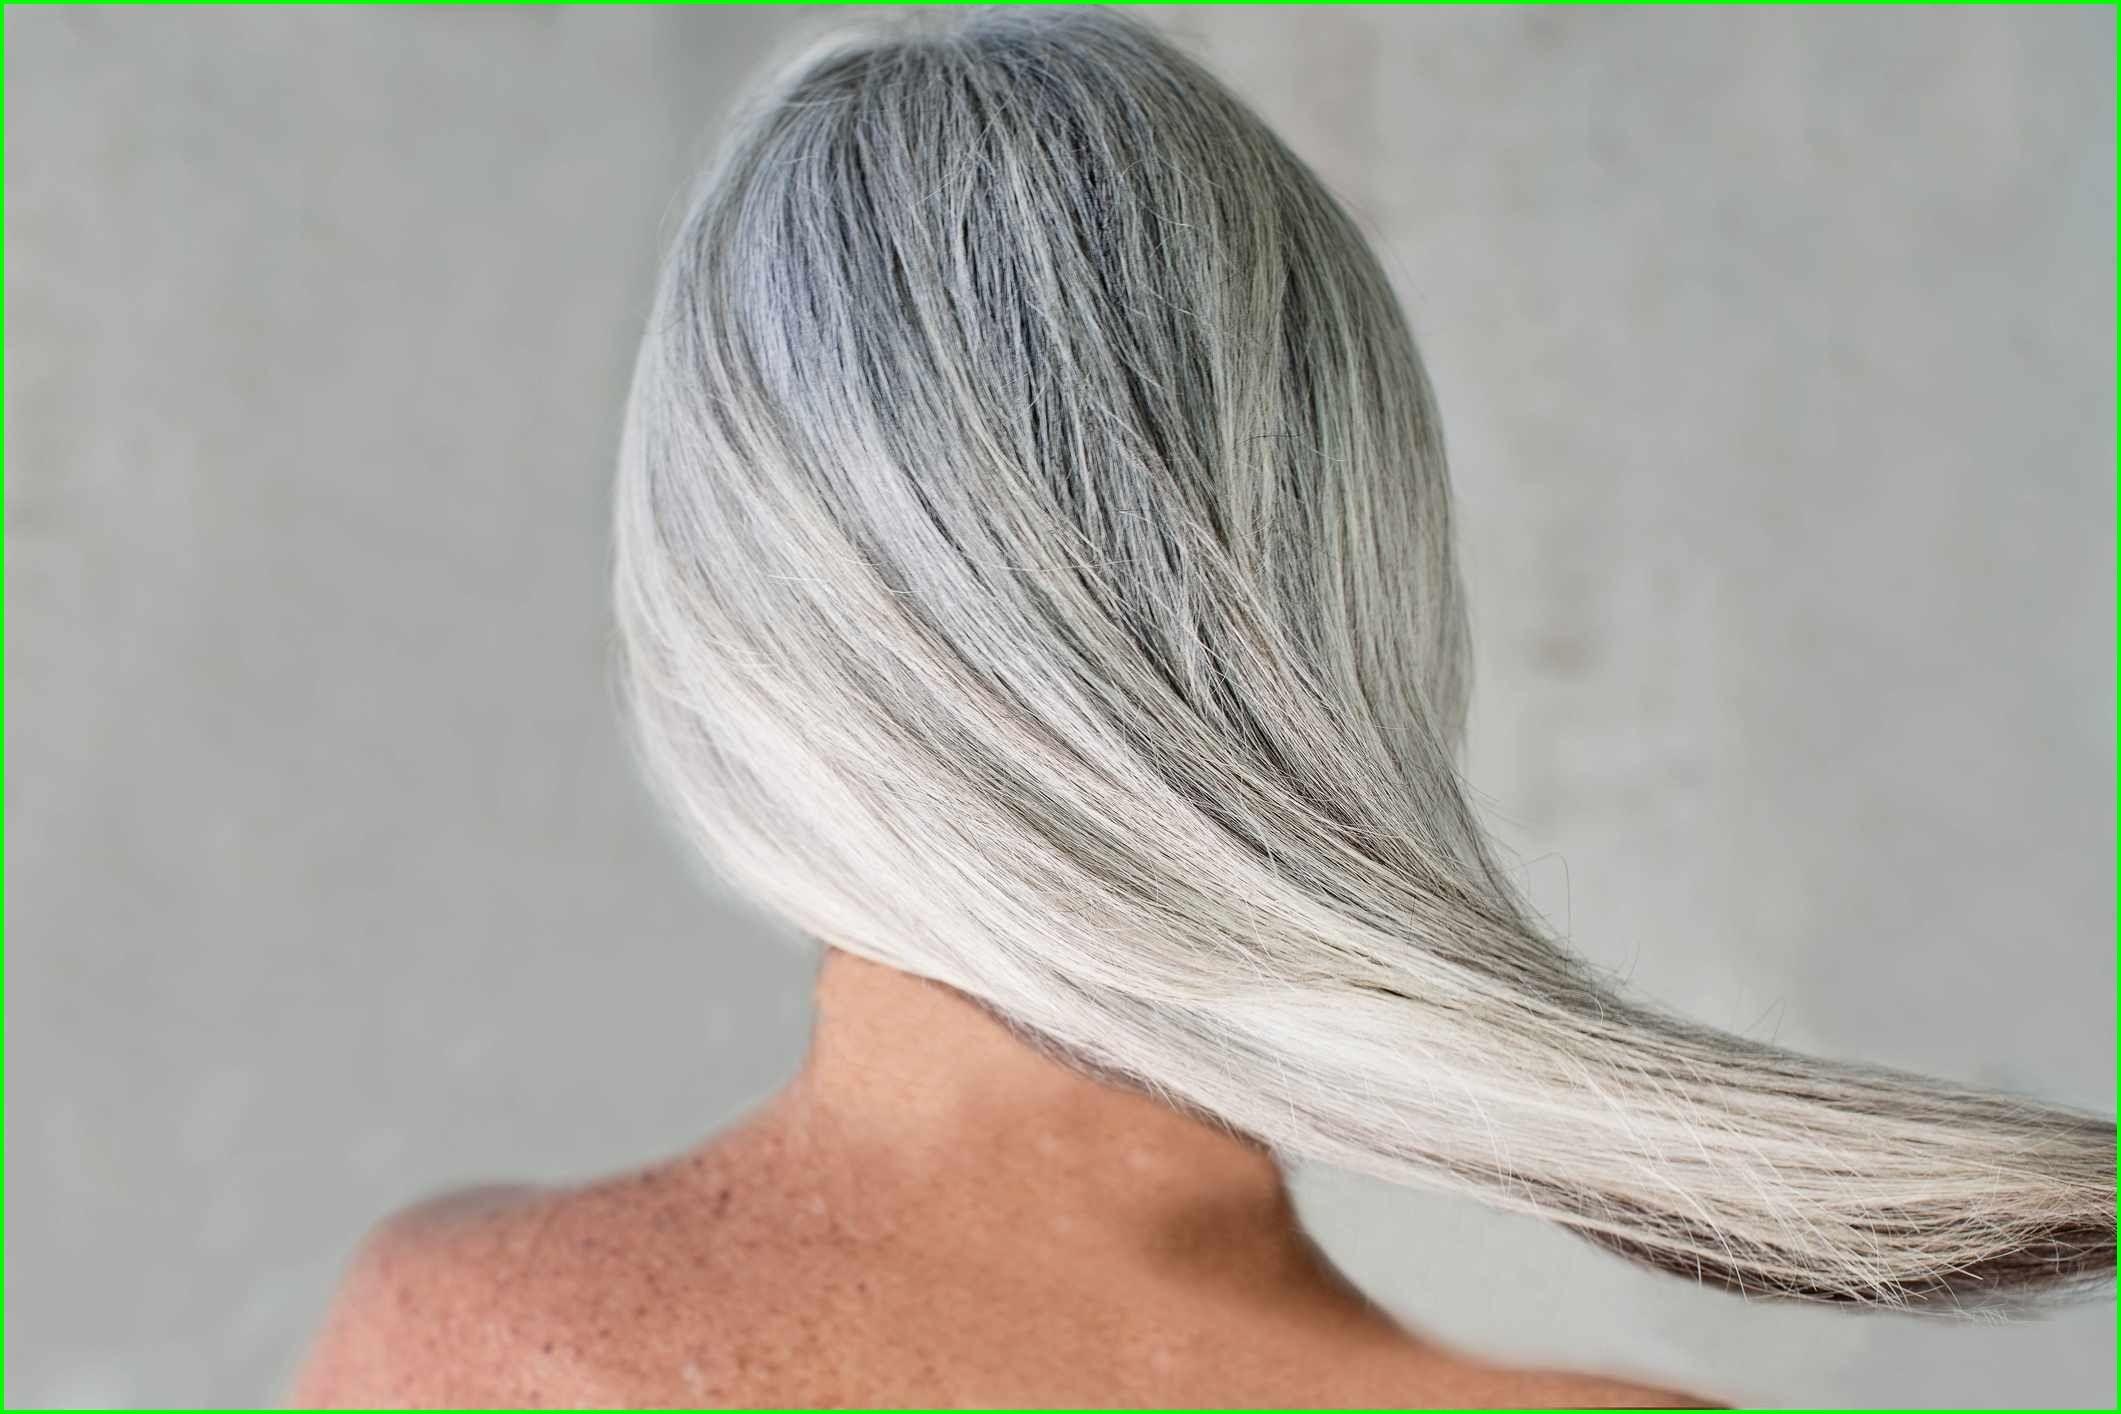 Original Mineral Hair Color Reviews 8696 Gone Gray How To Care For Your Hair Isoriginalmineraltestedona Covering Gray Hair Grey Hair Facts Hair Color Reviews